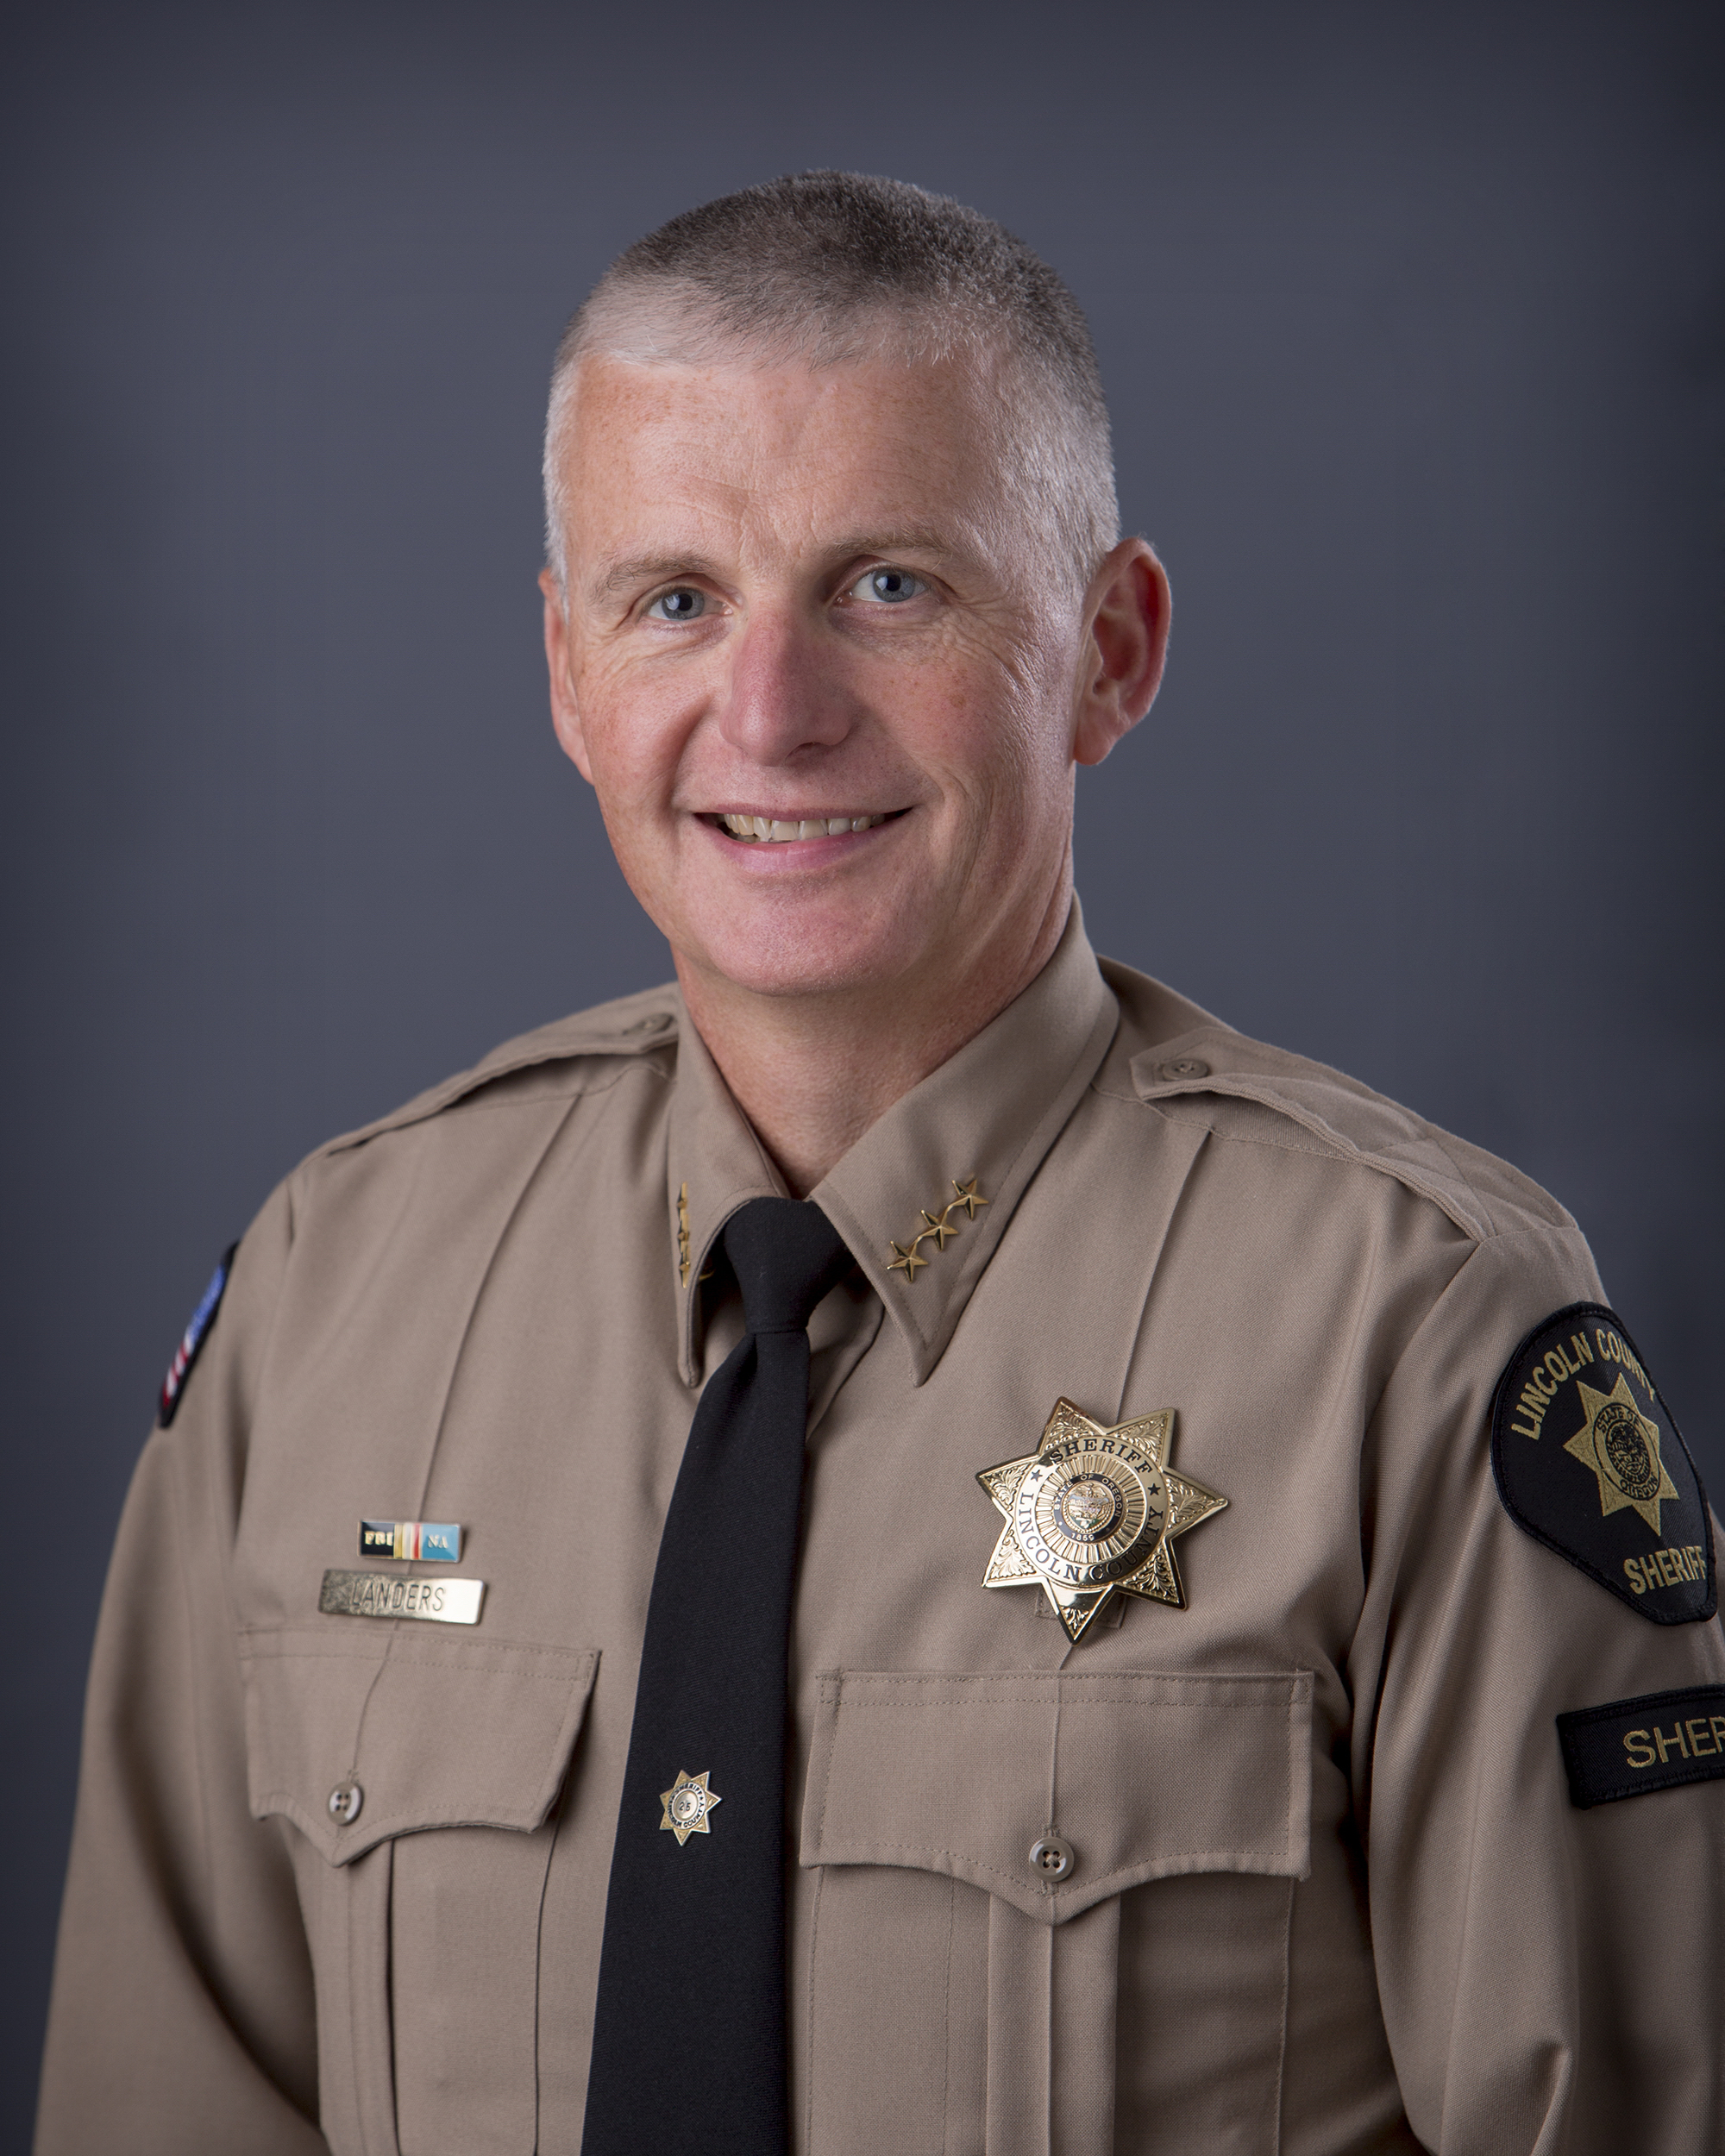 Sheriff Asks For Local Property Tax To Fund Public Safety